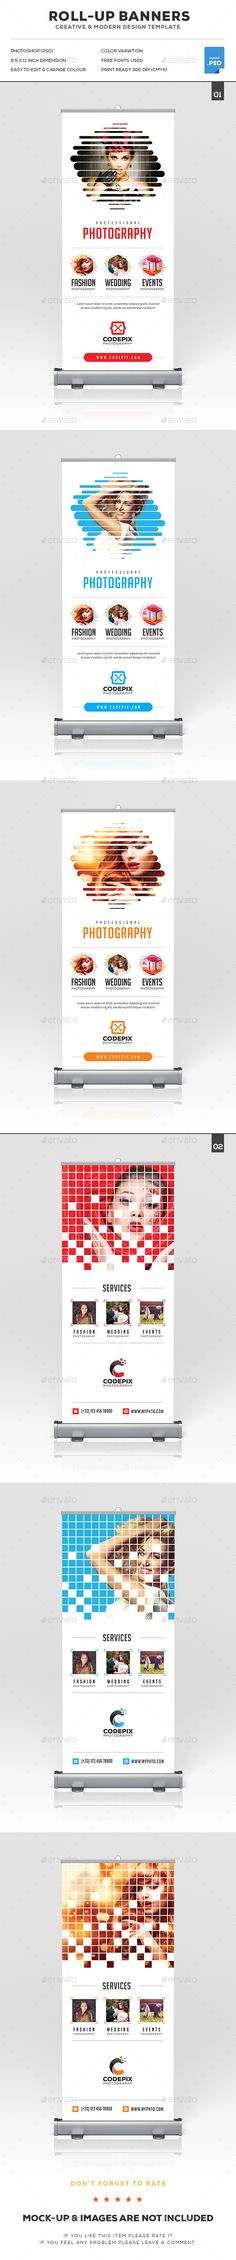 Photography Roll-Up Banner Bundle Templates PSD. Download here: http://graphicriver.net/item/photography-rollup-banner-bundle/16639875?ref=ksioks